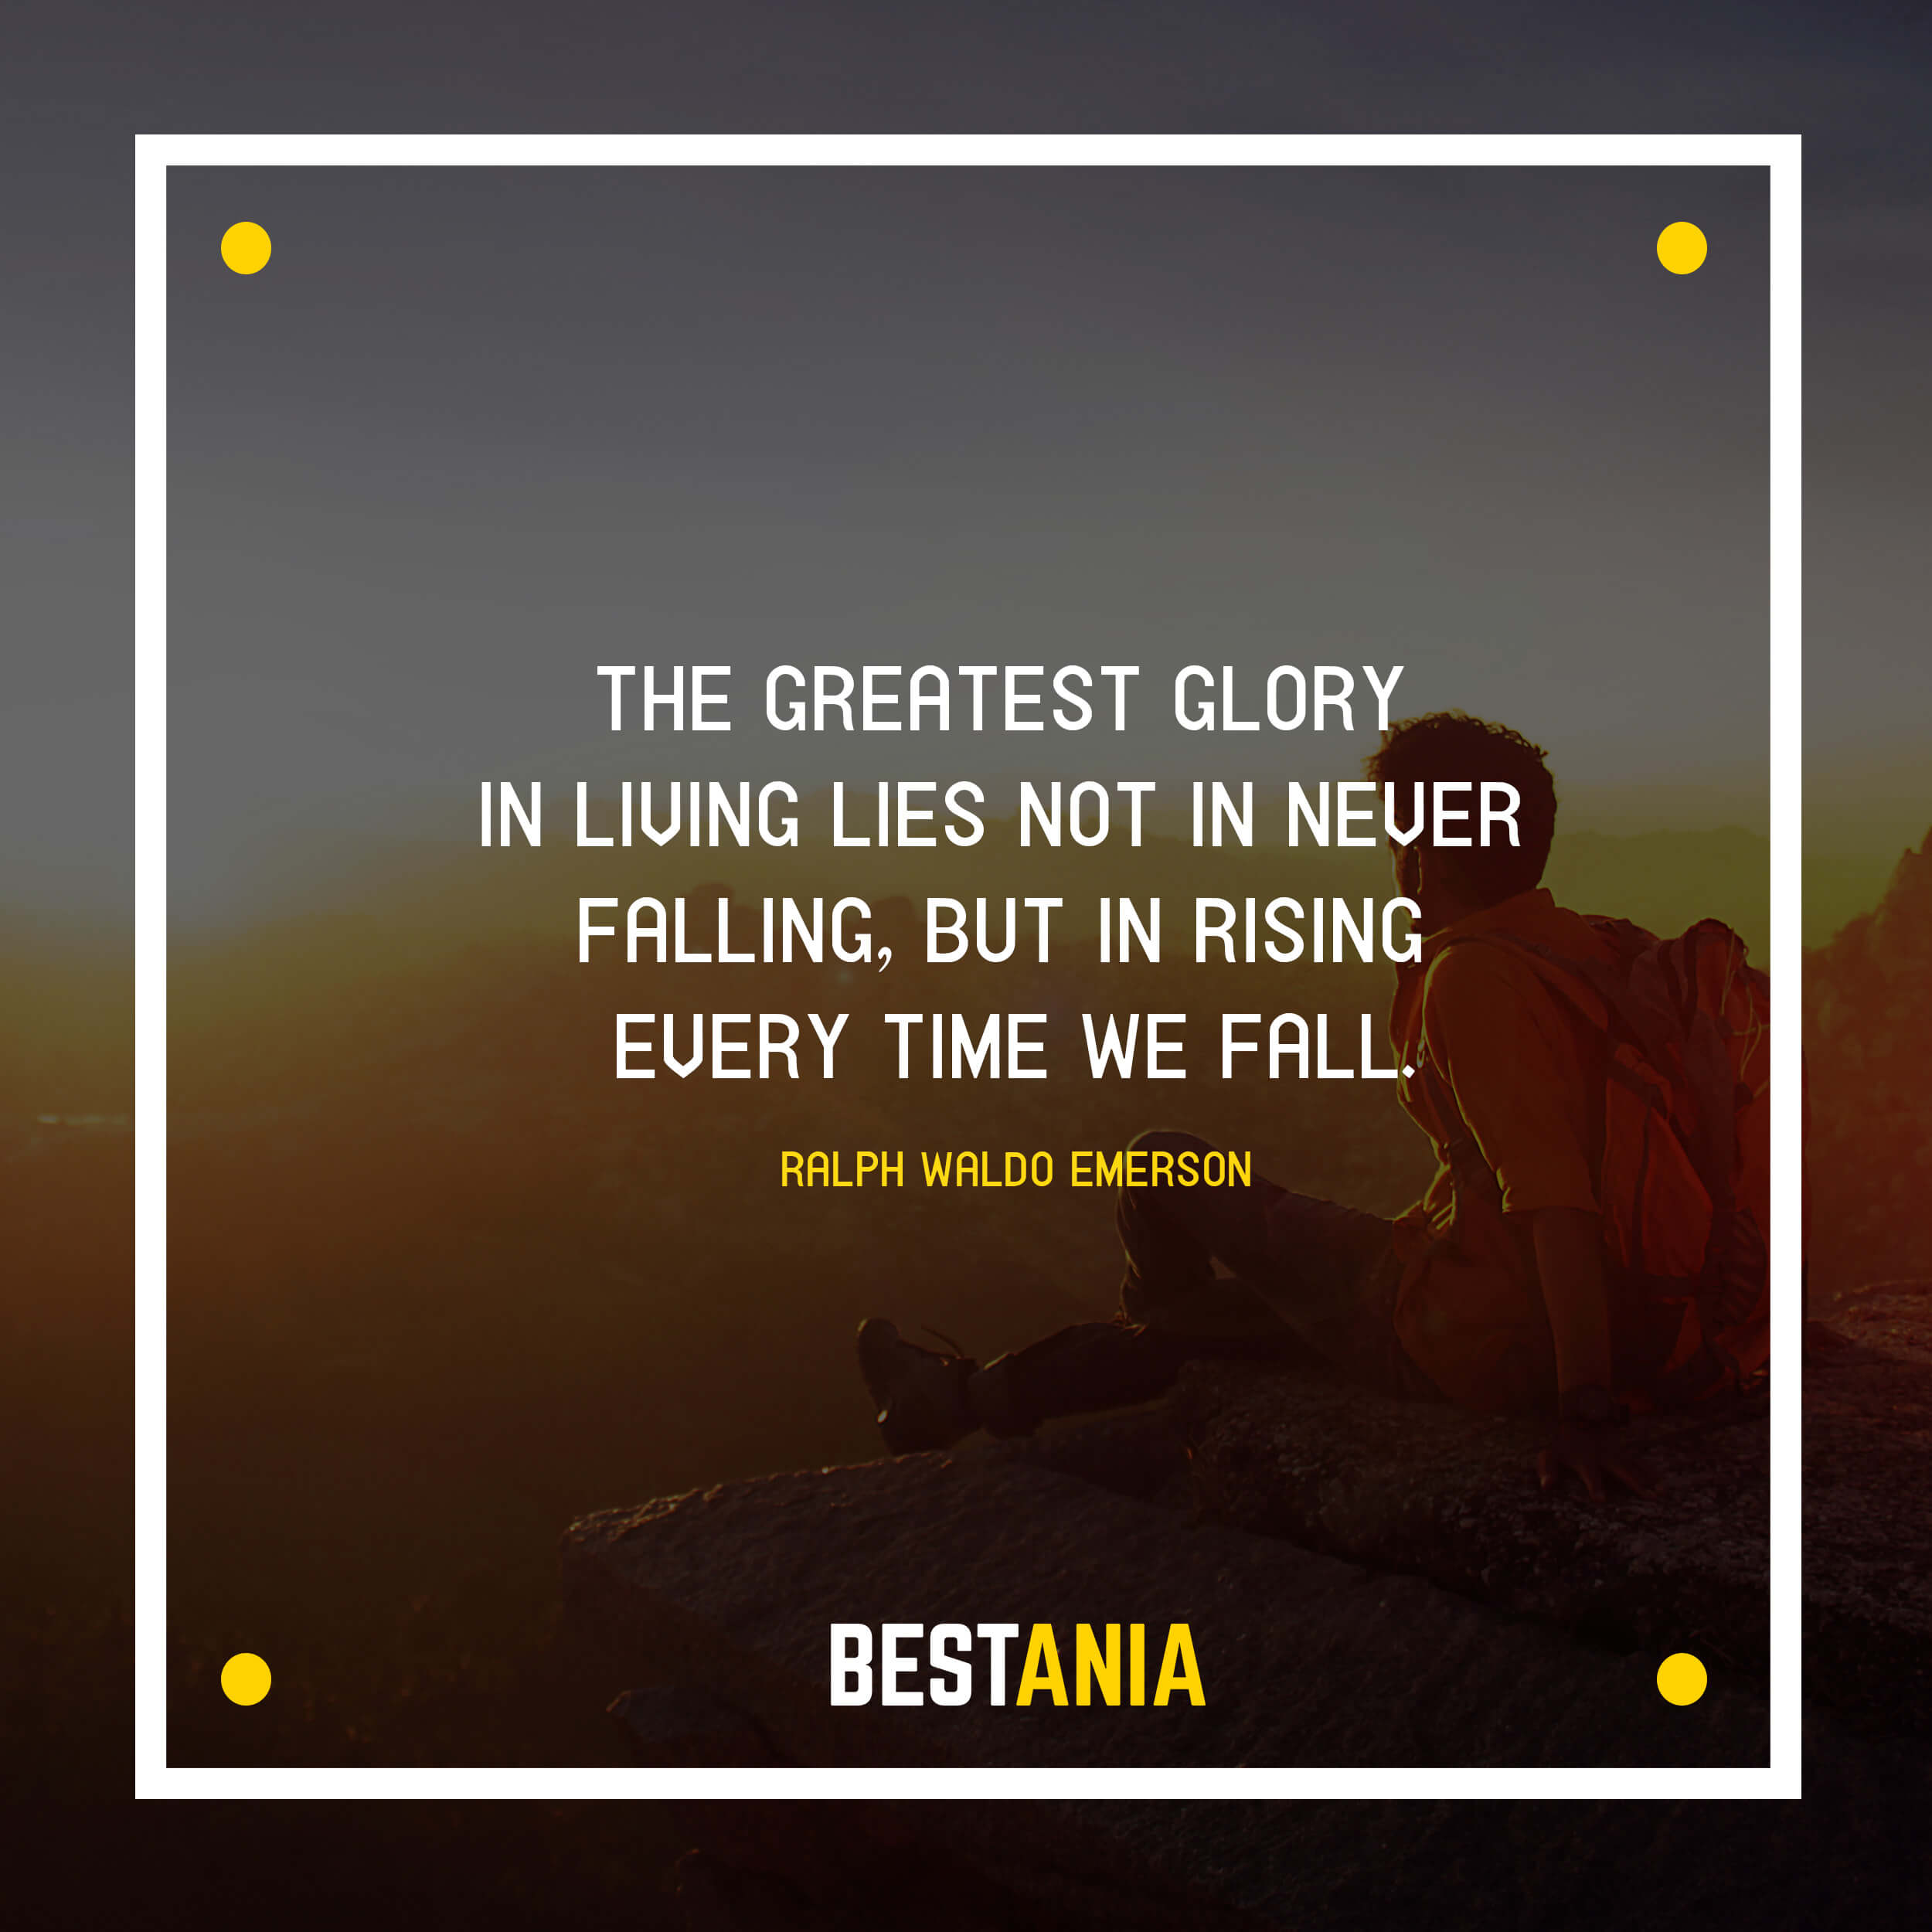 """""""THE GREATEST GLORY IN LIVING LIES NOT IN NEVER FALLING, BUT IN RISING EVERY TIME WE FALL."""" RALPH WALDO EMERSON"""